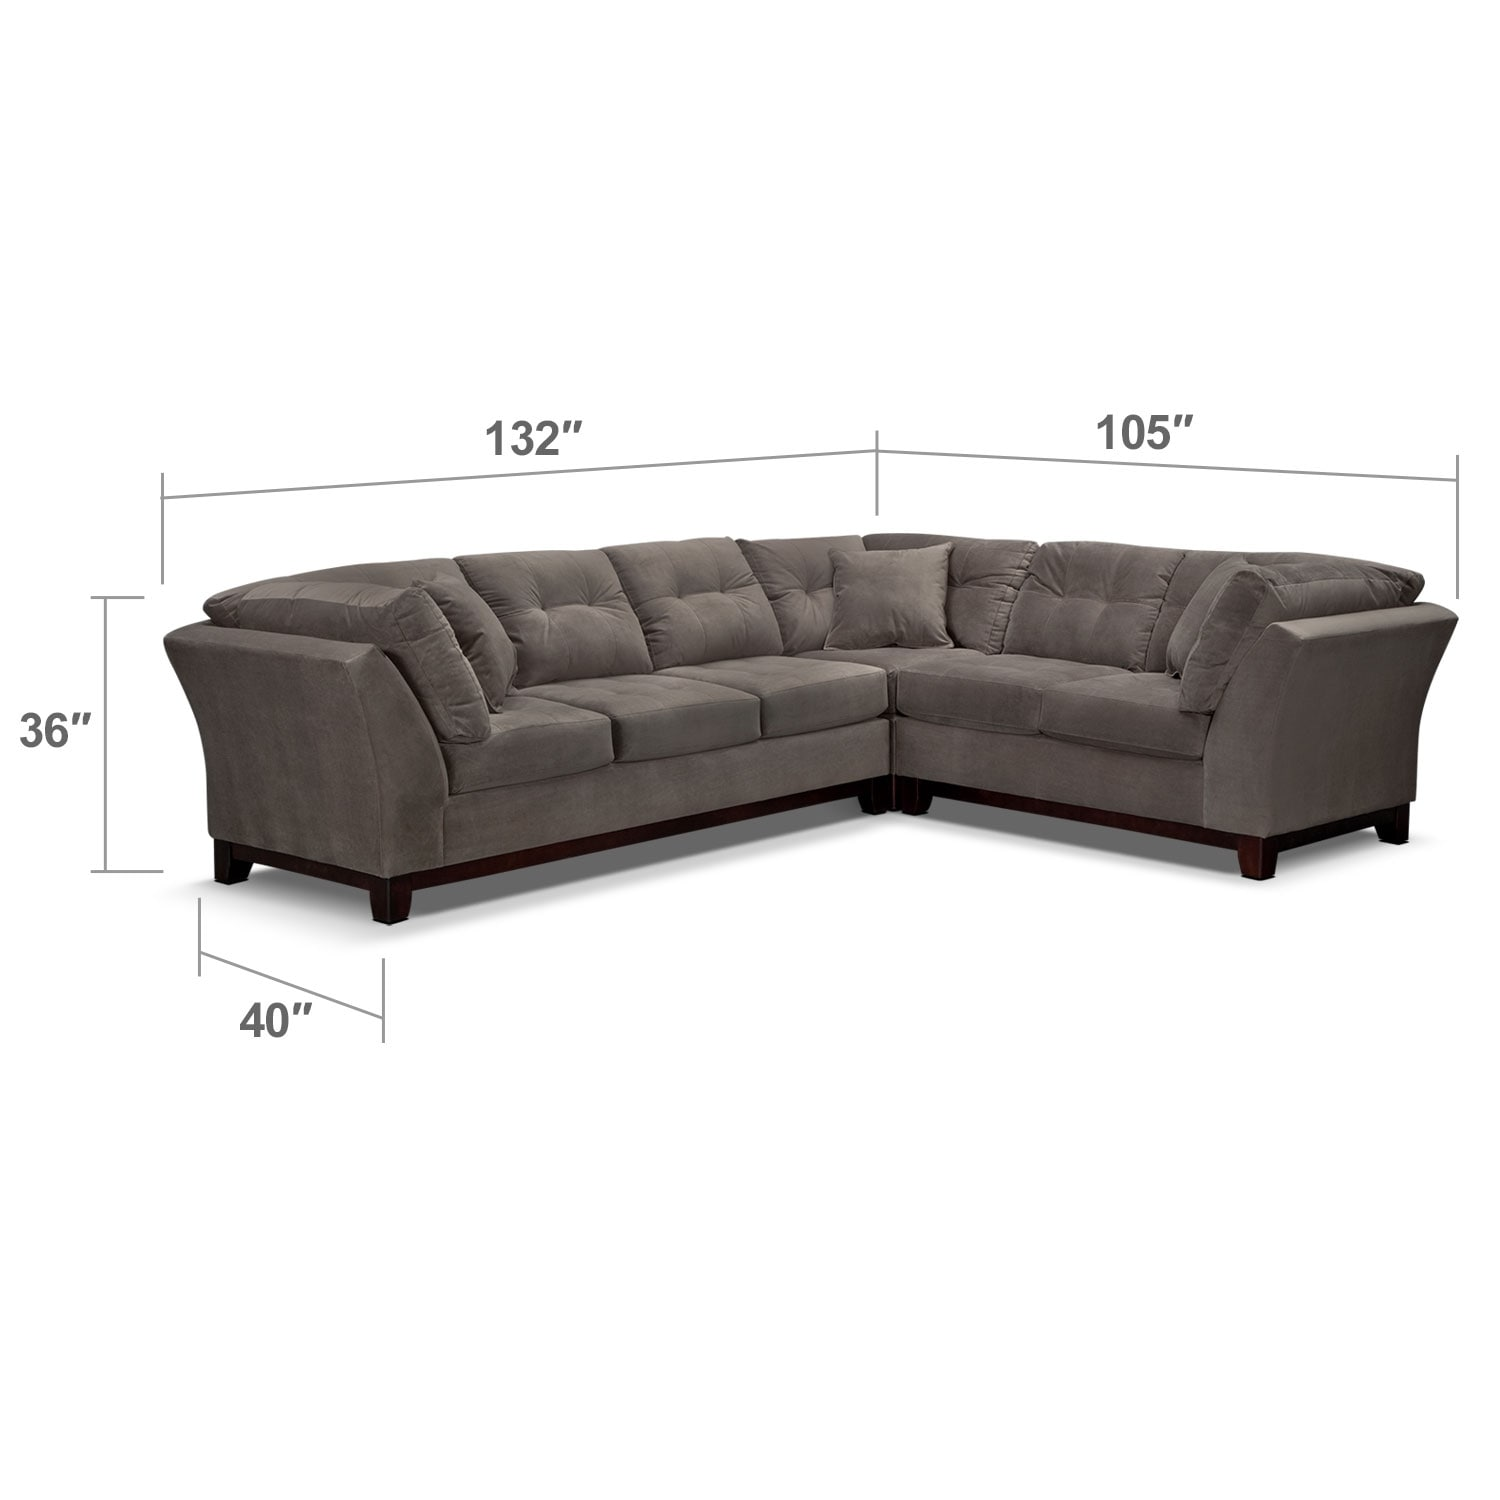 Living Room Furniture - Solace Gray II 3 Pc. Sectional (Reverse)